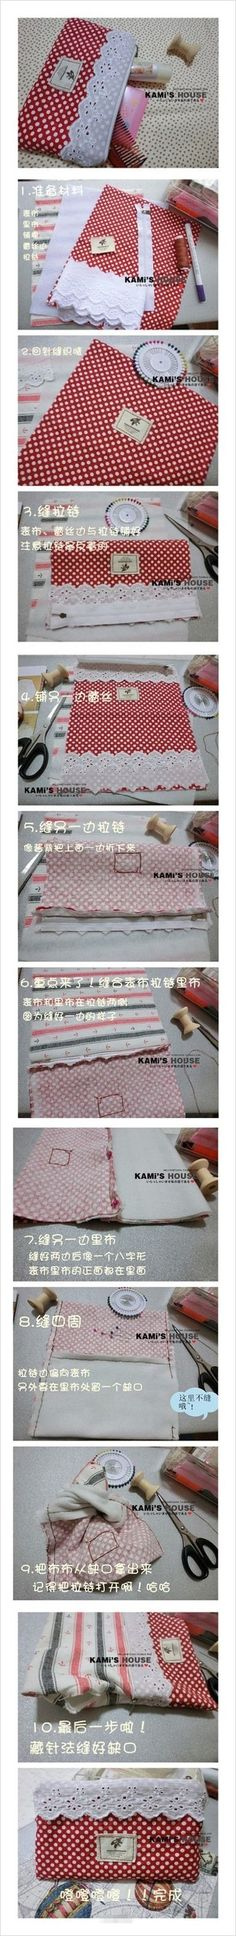 [만들기]파우치만들기/파우치도안 : 네이버 블로그 Fabric Gift Bags, Sewing Kit, Sewing Projects, Pattern, Crafts, School, Gift Ideas, Gifts, Molde